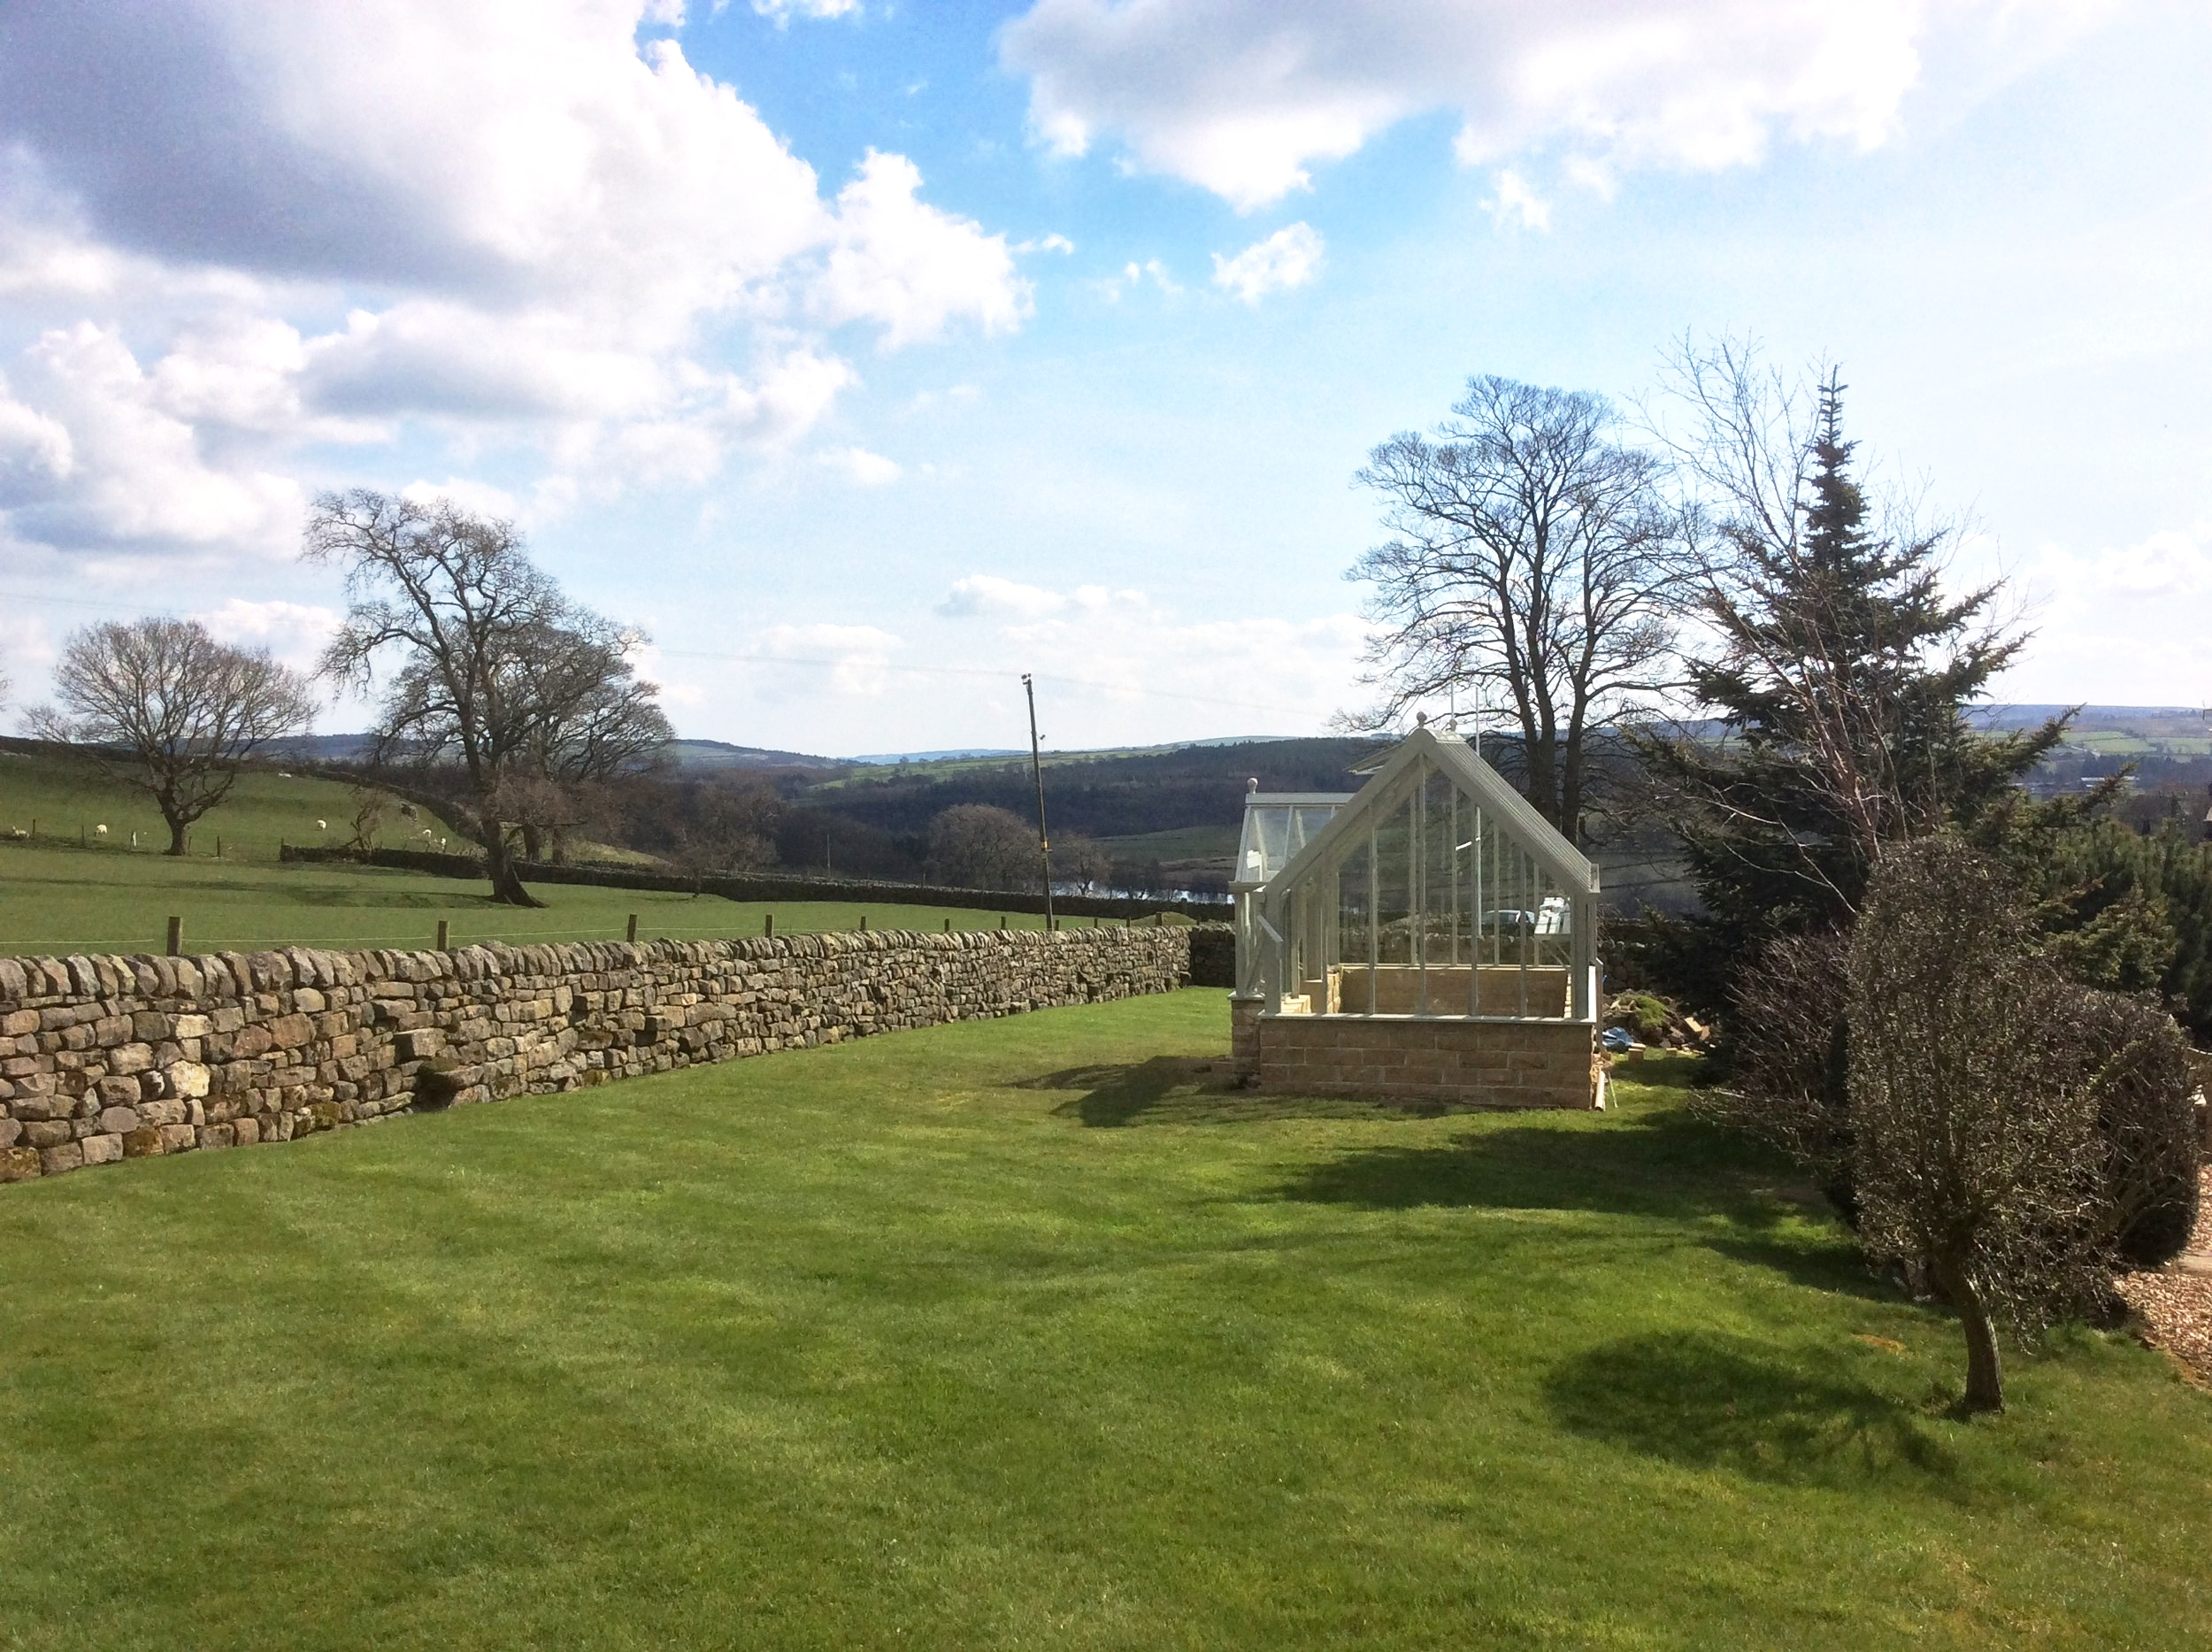 The new greenhouse, recently installed and ready to be linked to the rest of the garden.